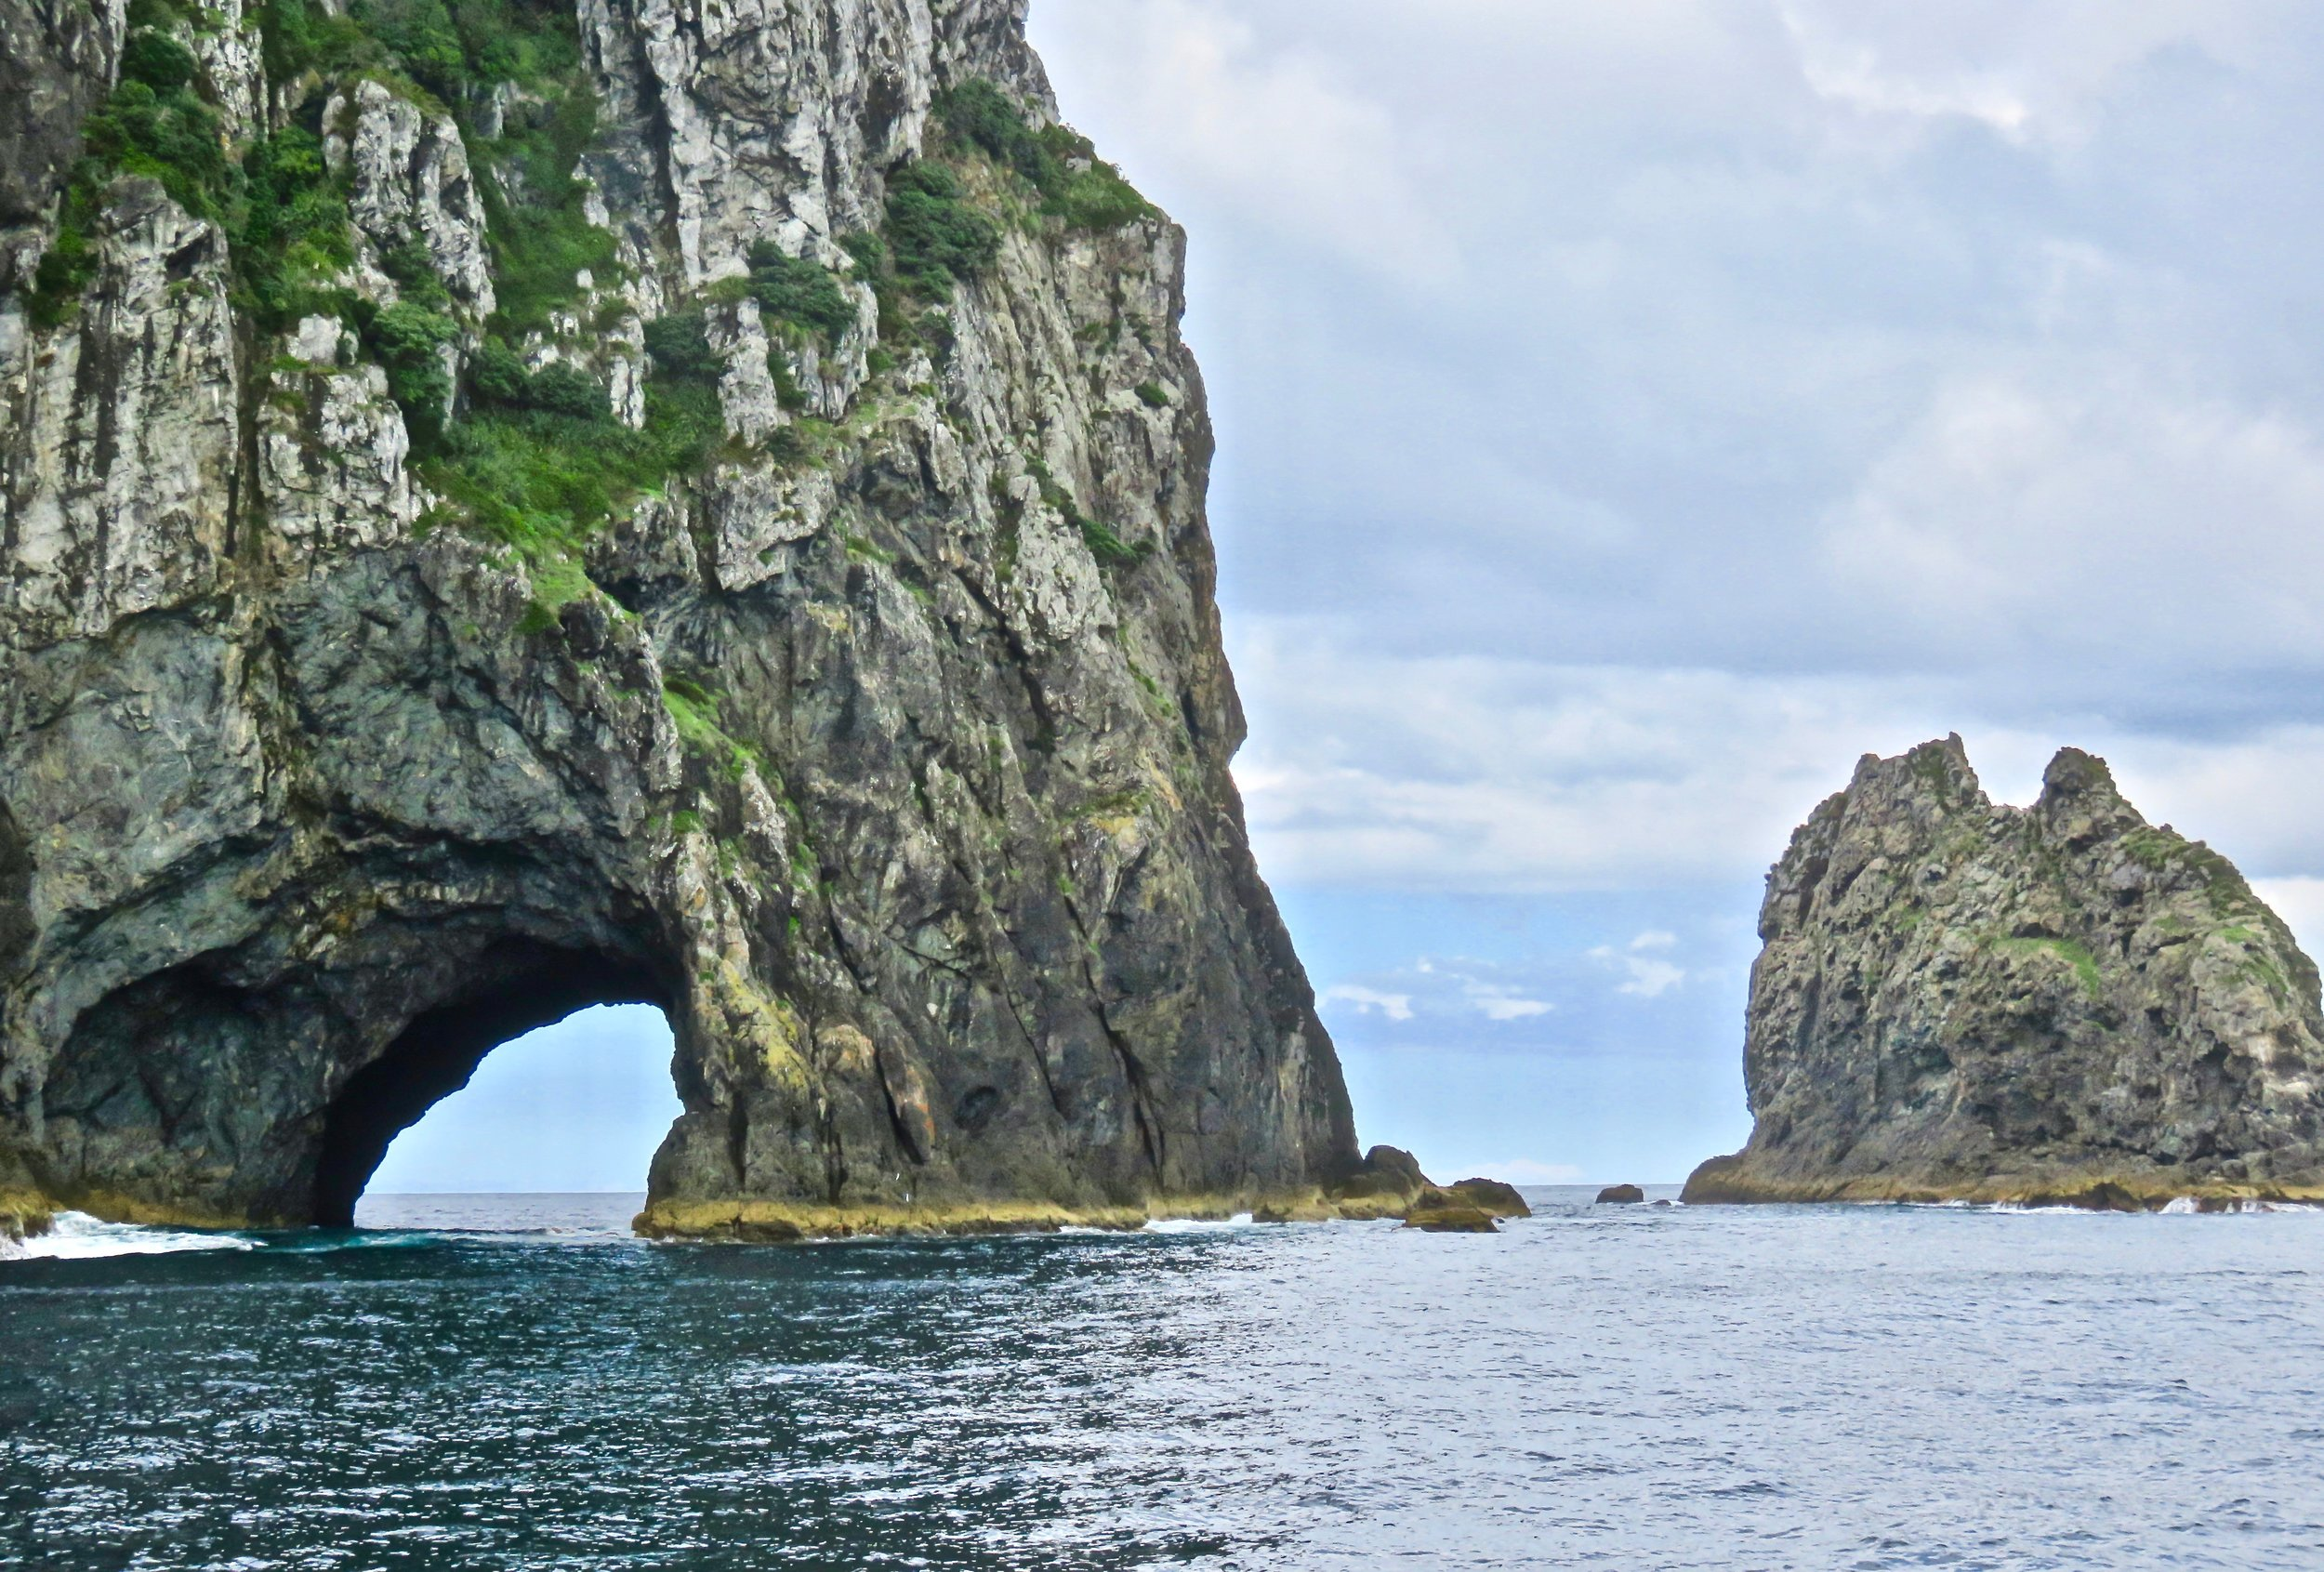 The Famous Hole in the Rock, Bay of Islands